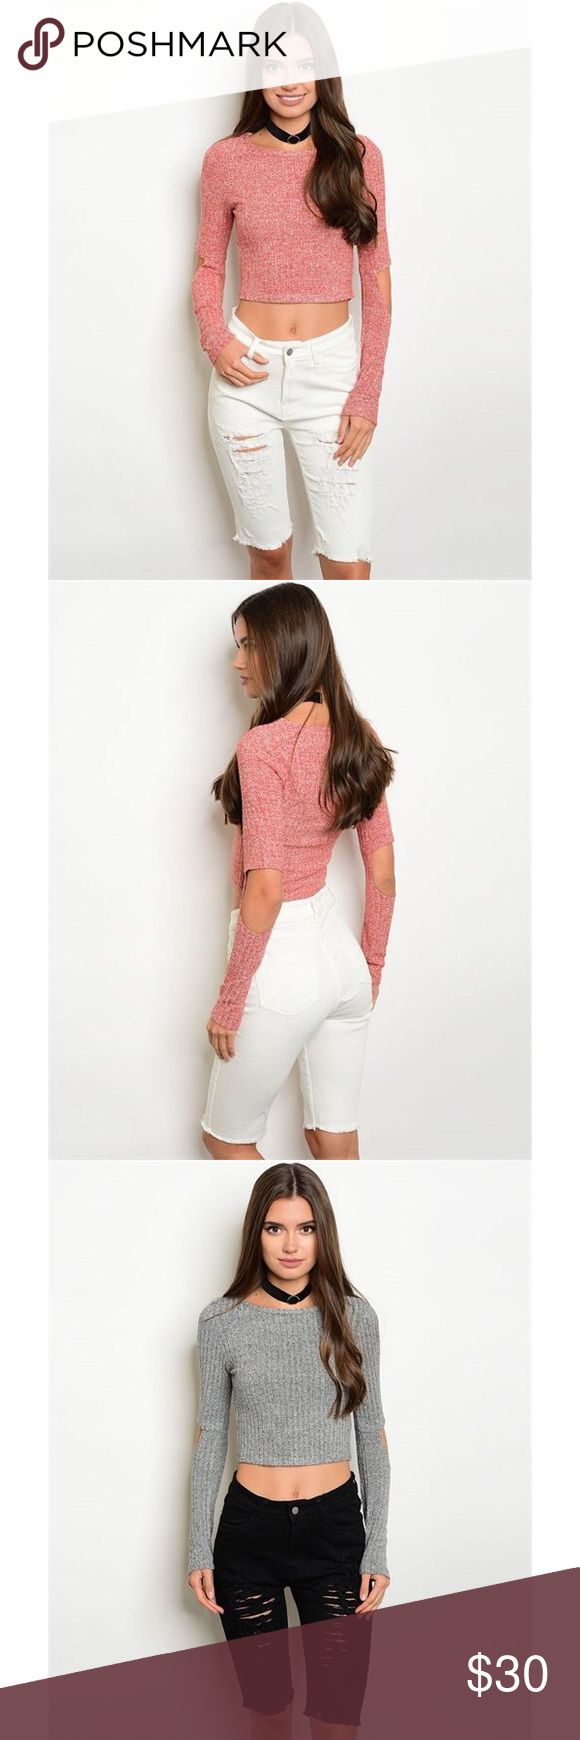 "Pink long sleeve crop top sweater Long sleeve open elbow detail marbled fabric ribbed crop top in pink. also available in heather gray (see separate listing). Fabric Content: 75% POLYESTER 20% RAYON 5% SPANDEX. measurements for a size small: L: 17"" B: 13.5"" W: 13.5"". ONLY CONSIDERING OFFERS THROUGH THE ""OFFER"" BUTTON. No trades, no off App transactions. Any questions can be addressed below. Available: 2 Small, 2 Medium, 2 Large. Tops Crop Tops"